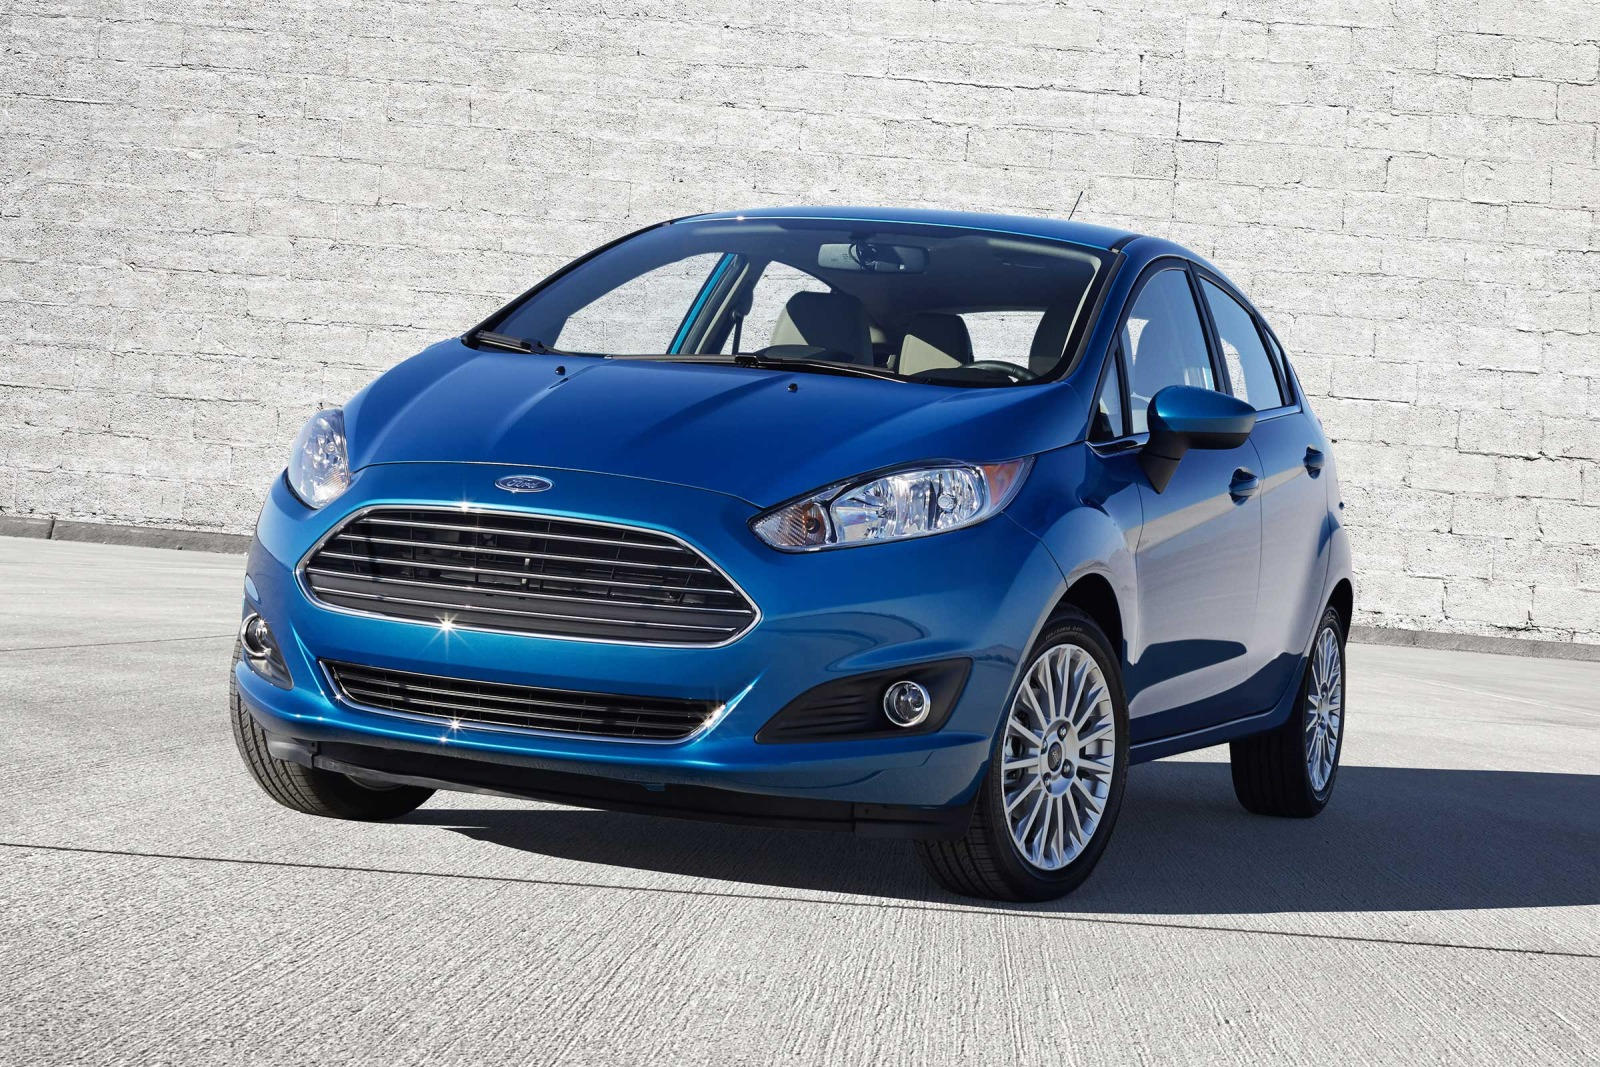 2019 Ford Fiesta Hatchback: Review, Trims, Specs, Price ...